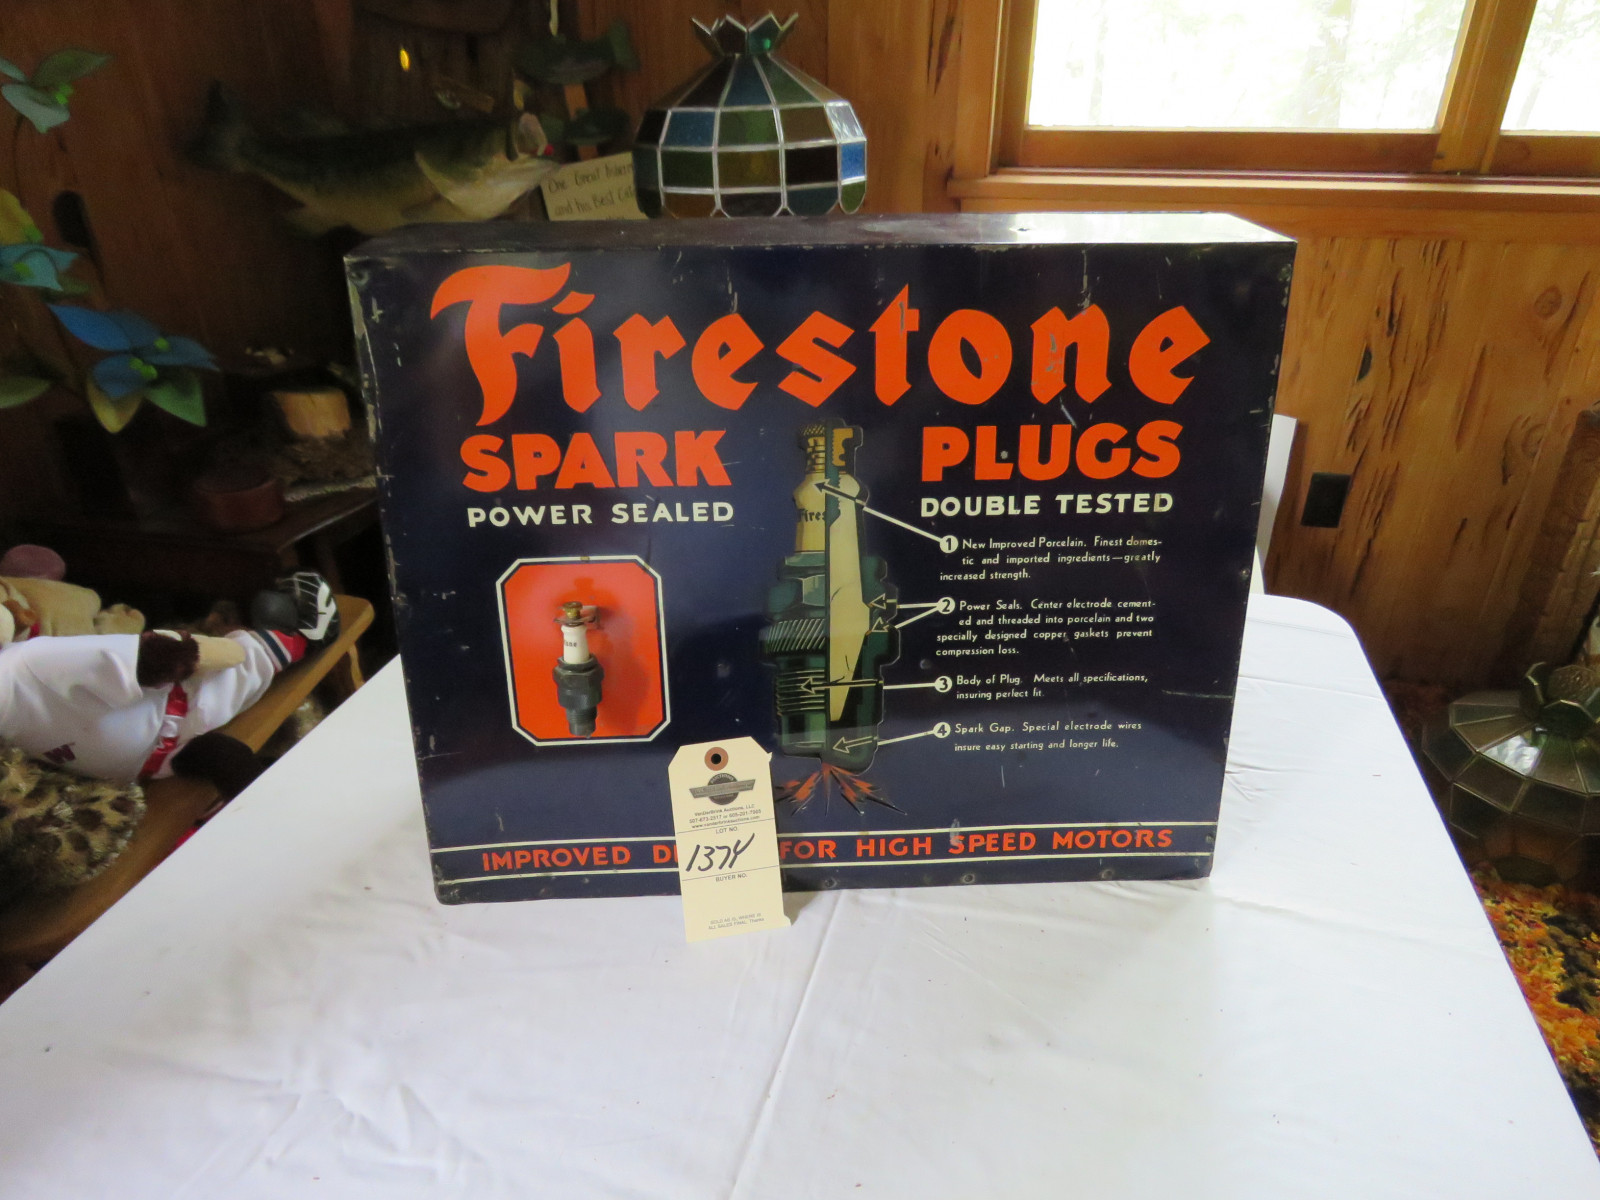 Vintage Firestone Metal Spark Plug Display - Image 1